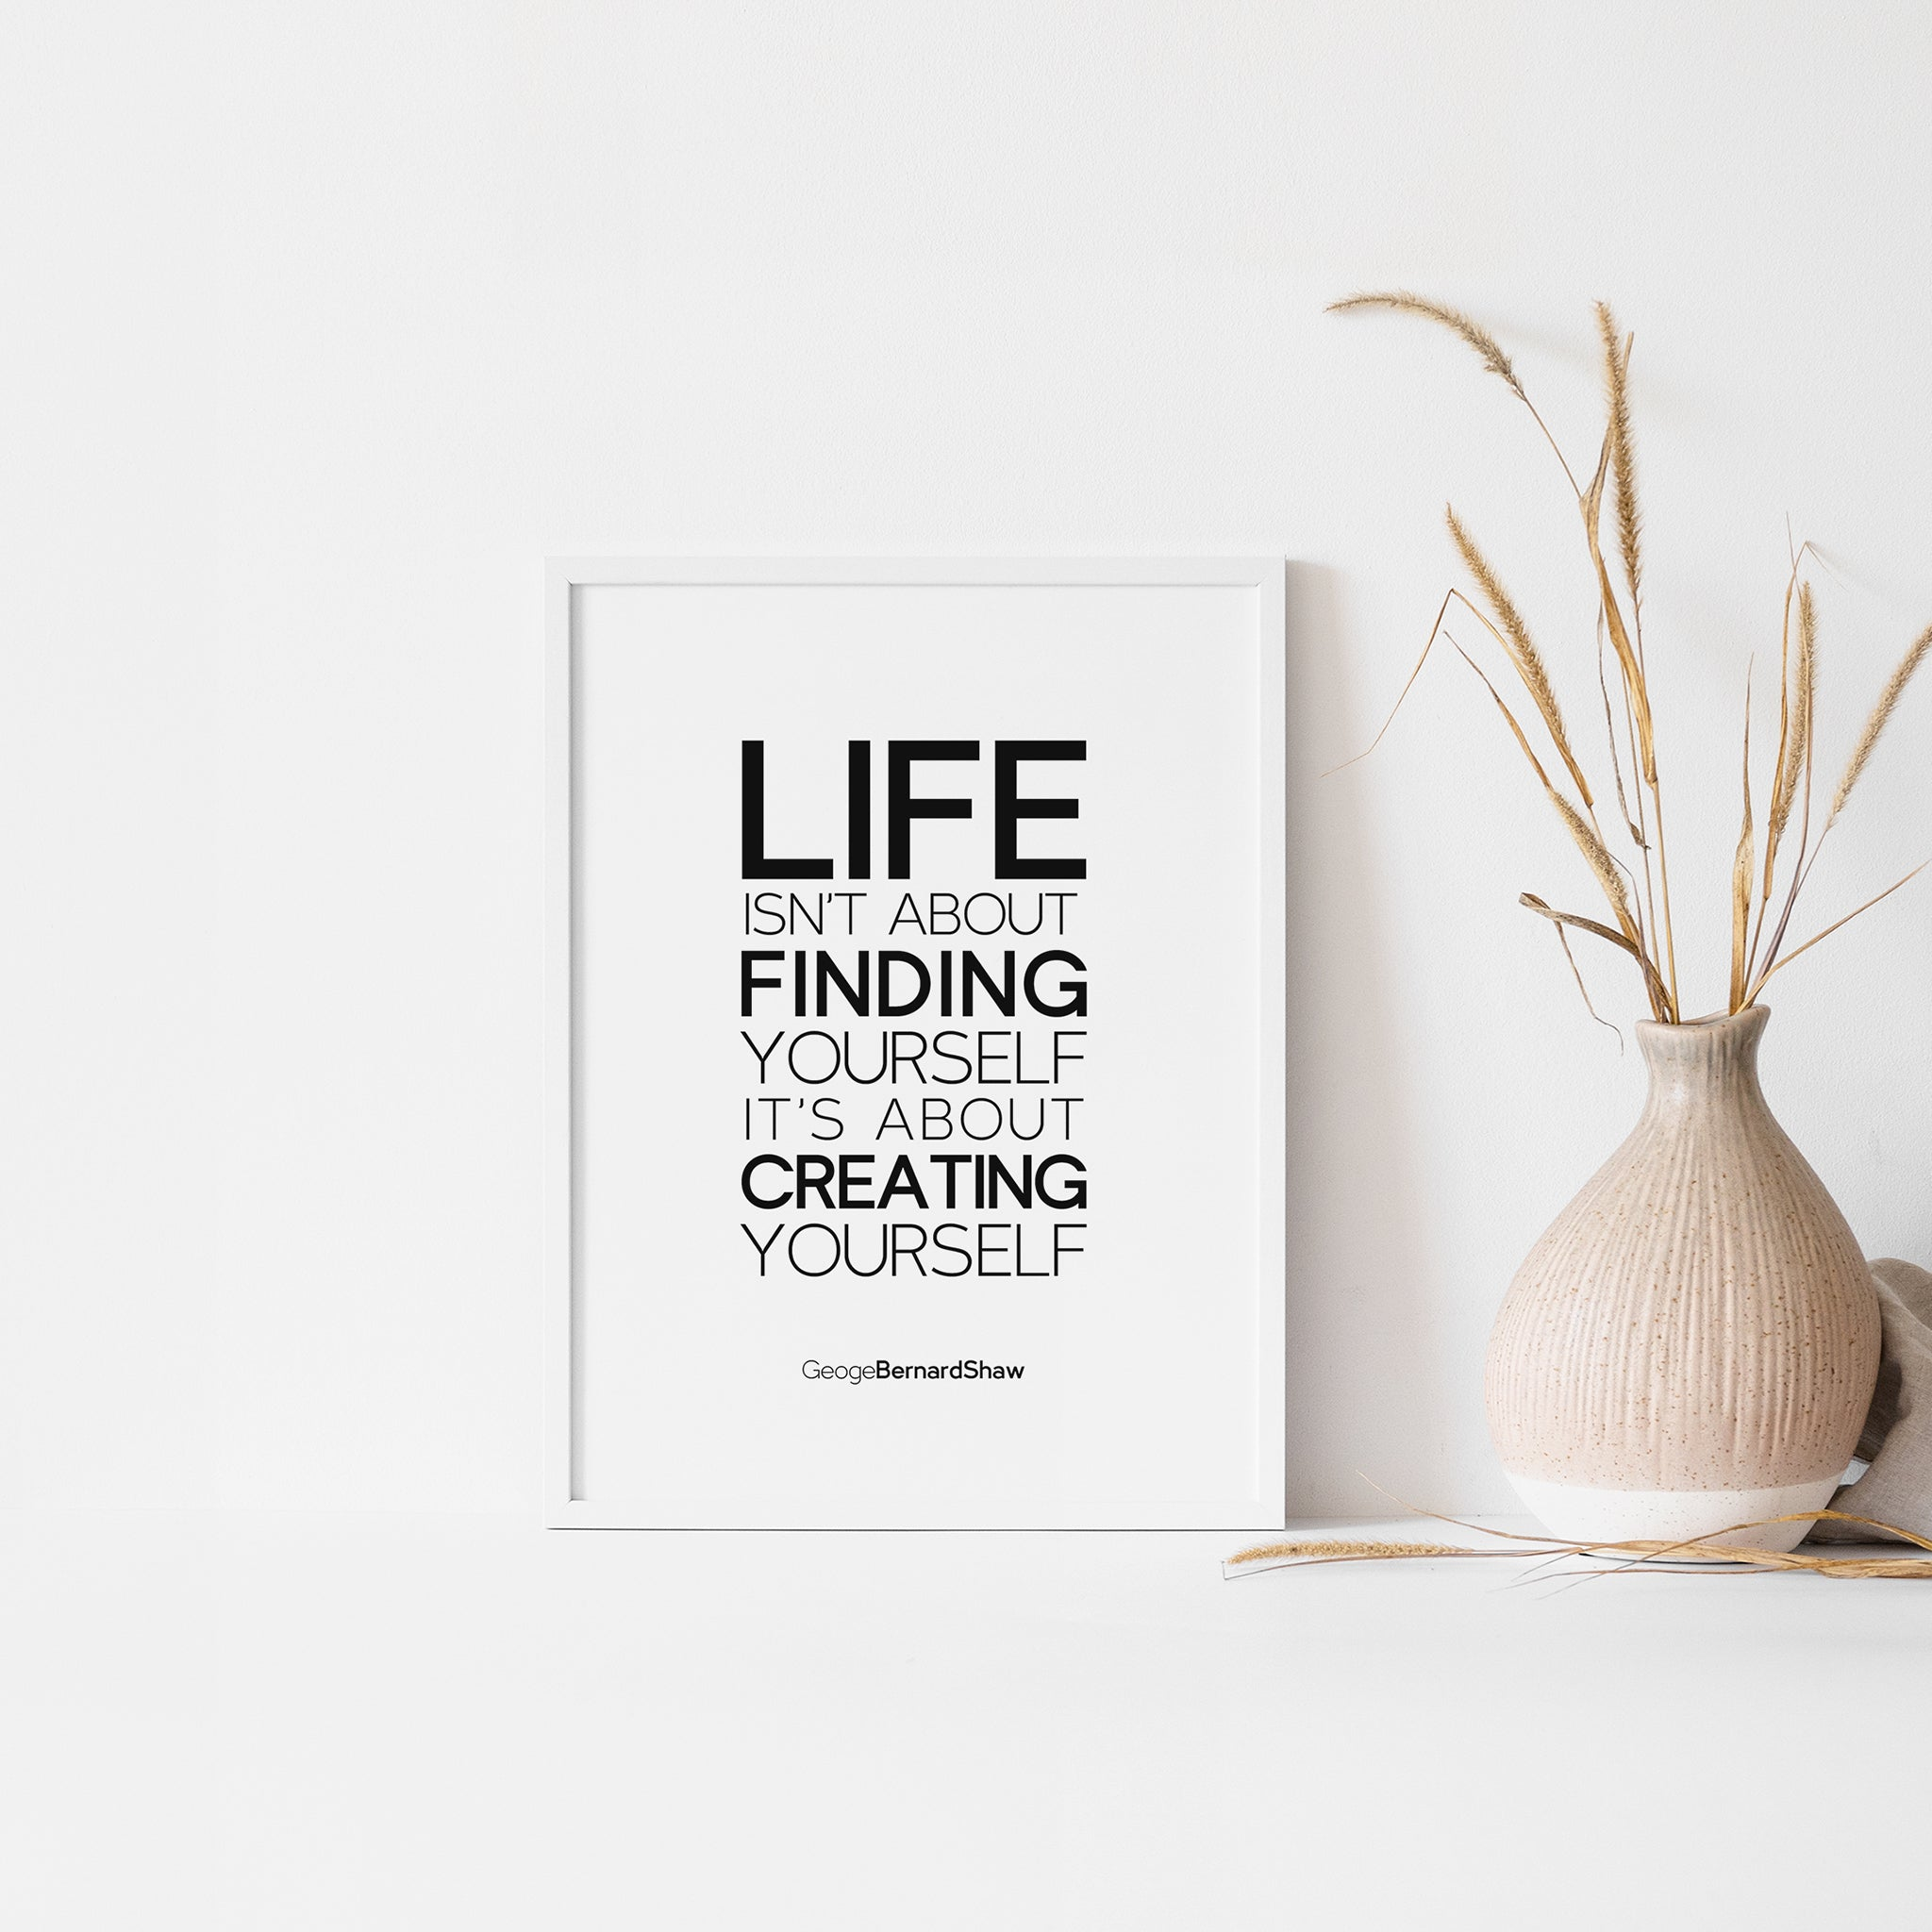 Life isn't about finding yourself. It's about creating yourself. Quote art poster for your home and office